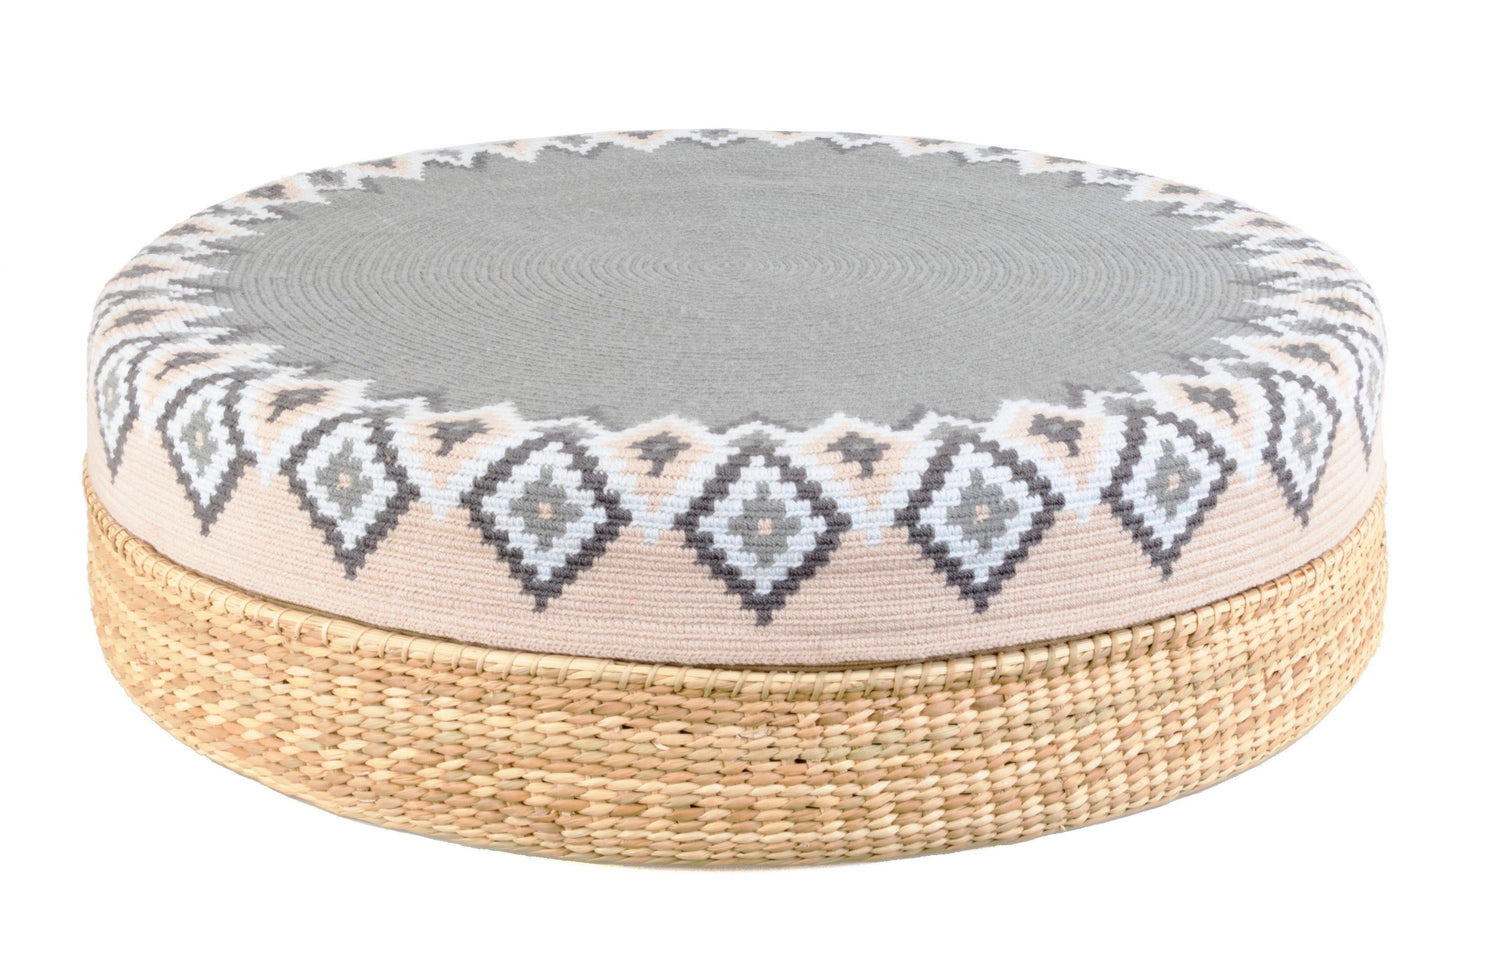 D.A.R. Projects Round Textile and Grass Pouf- Gray with Beige and Sky D.A.R. Proyectos